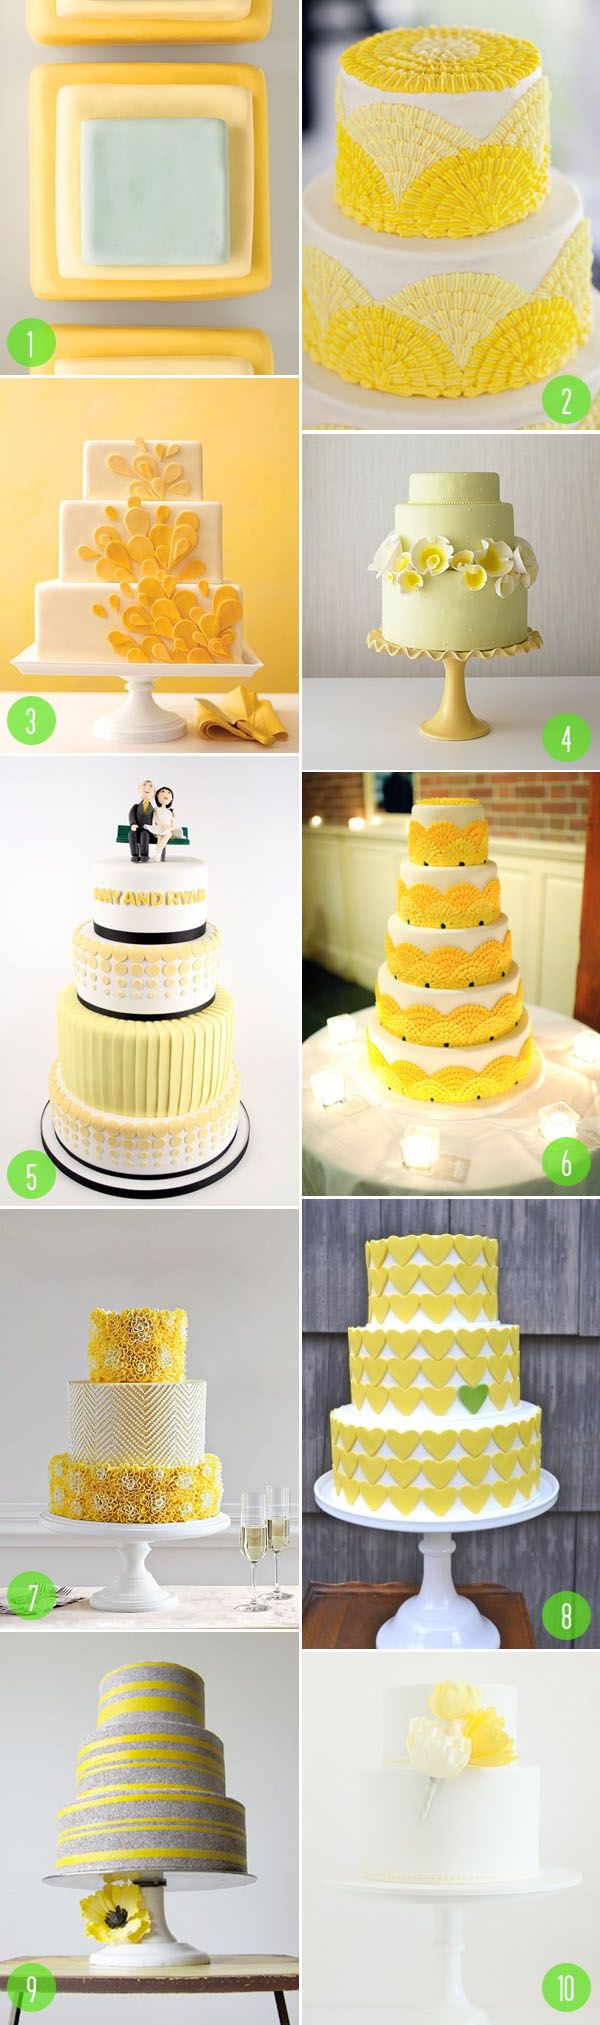 Top 10: Yellow wedding cakes | modern wedding | cakes + toppers ...